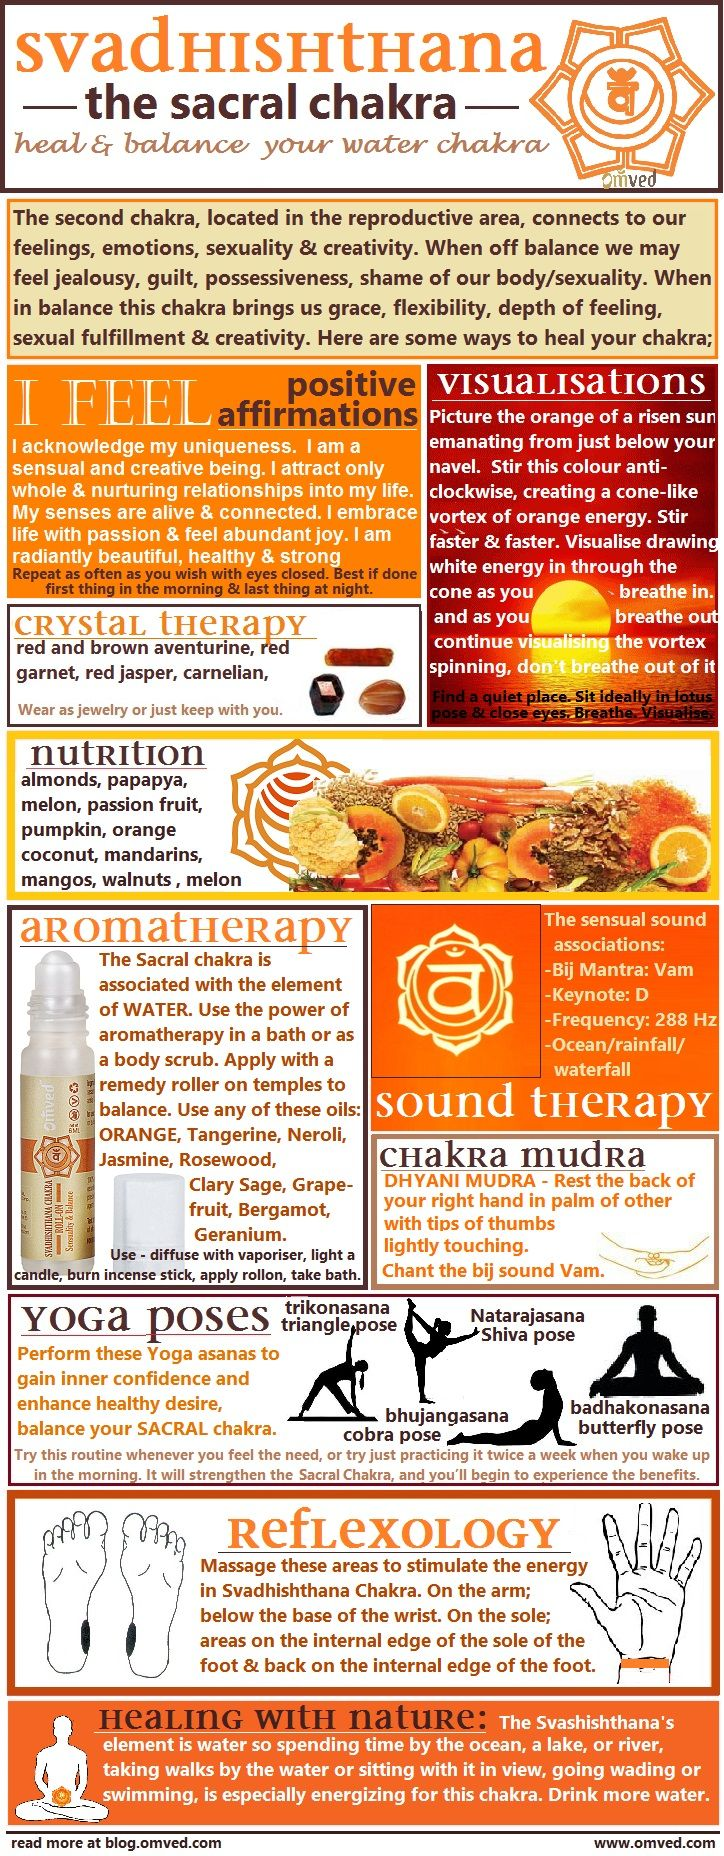 I'm not sure about the crystals...10 ways to Heal & Balance your chakras - There are many ways one can begin to balance their Sacral Chakra. Here are several useful methods, including aromatherapy, visualisations, affirmations, mudra, yoga poses, nutrition, reflexology color, nature and sound therapy!